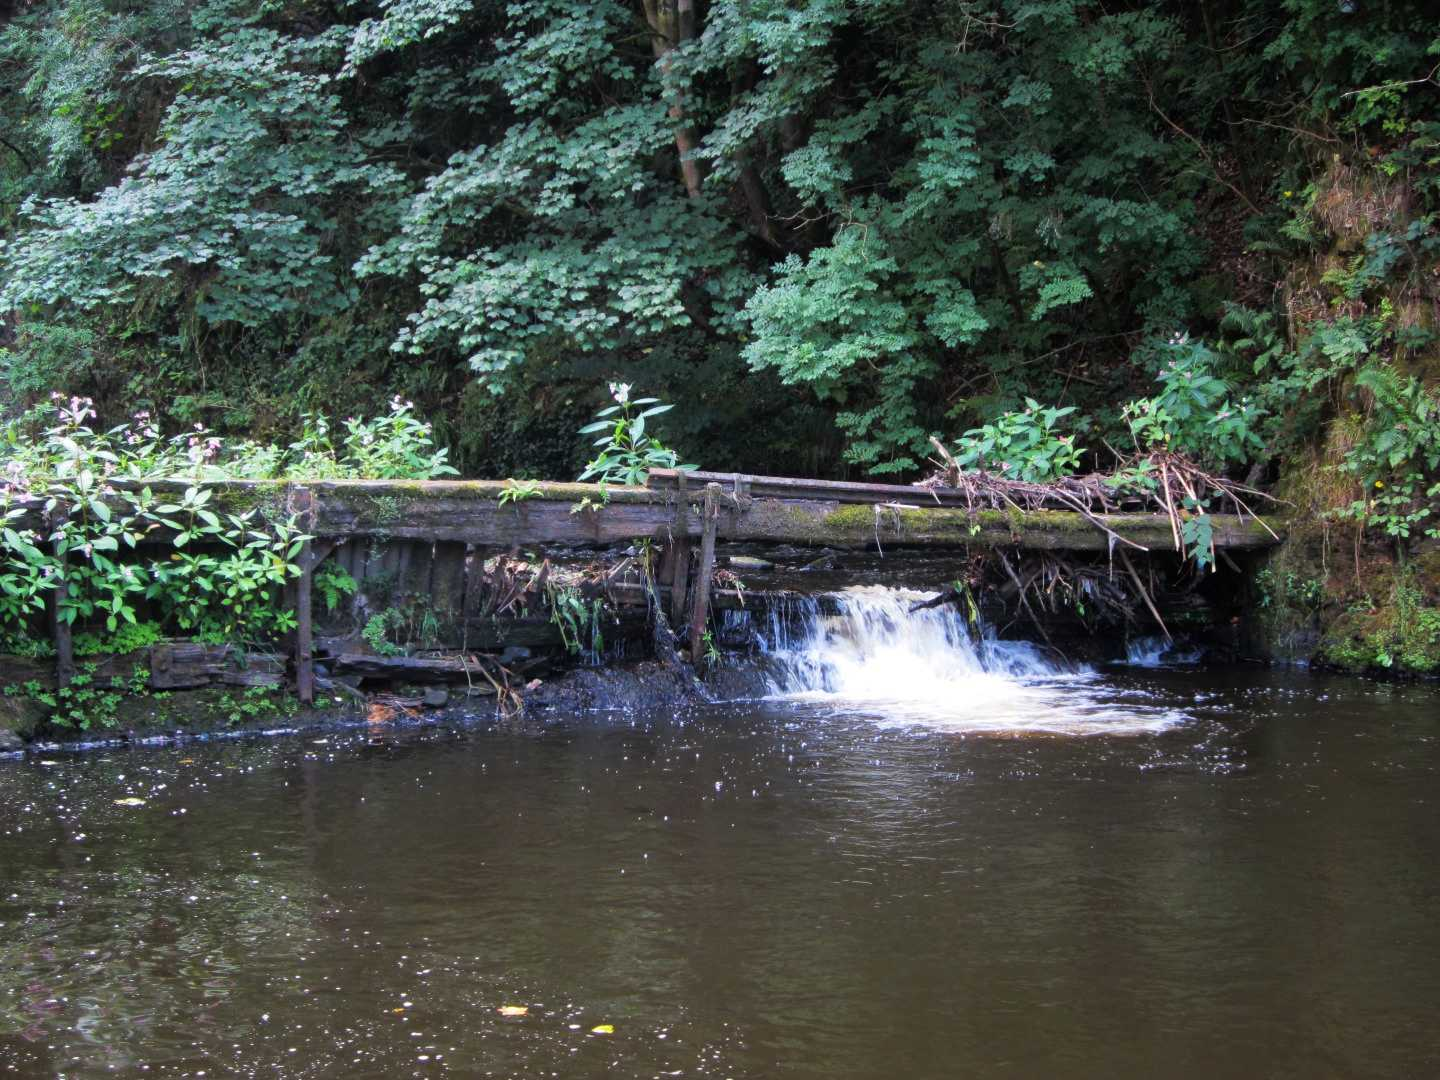 Improving the quality of the River Irwell